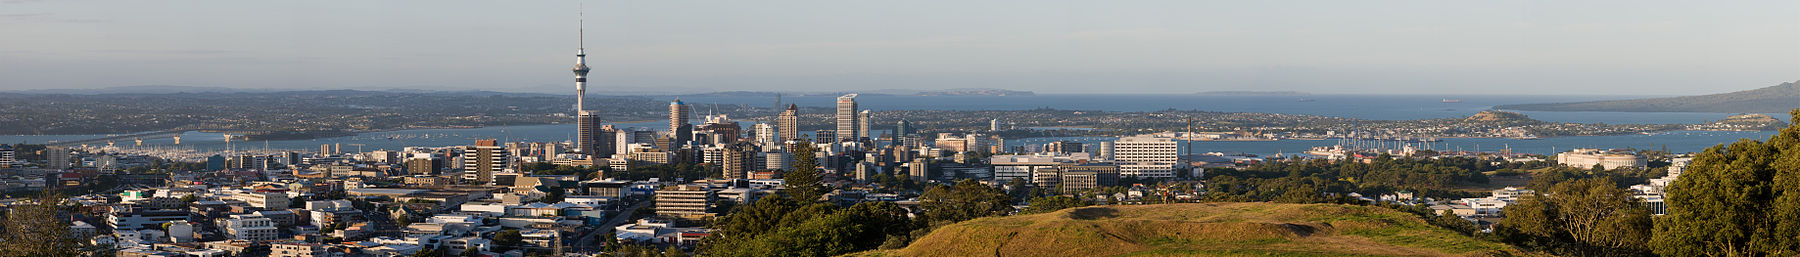 Central Auckland, Waitemata Harbour, North Shore (middle distance)